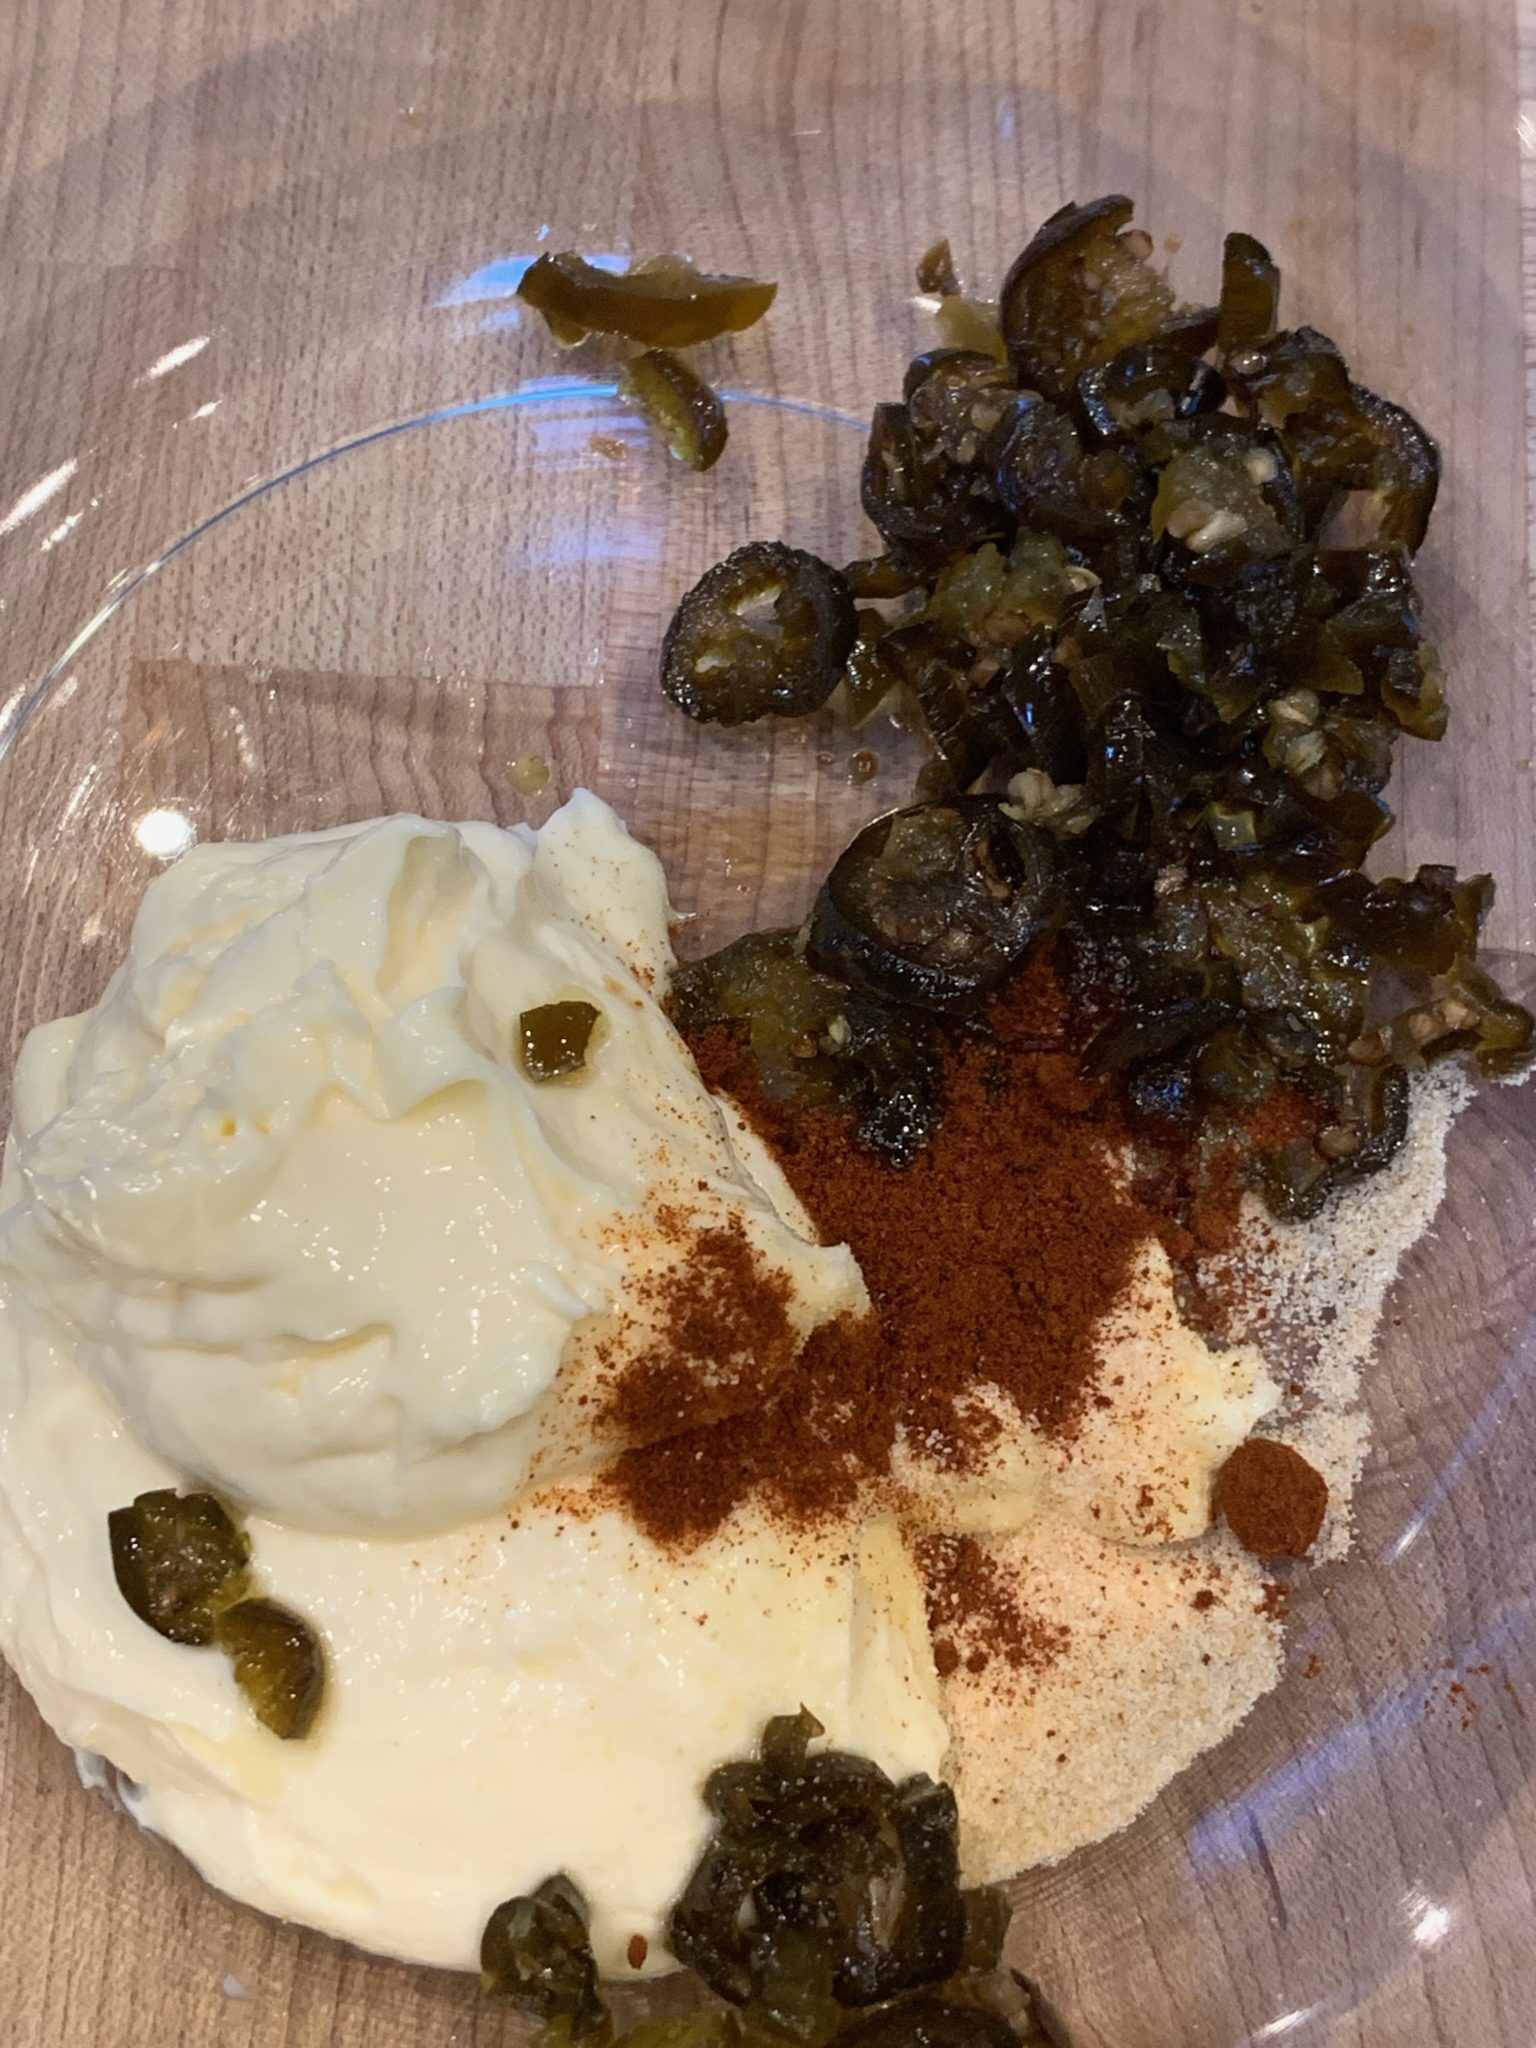 Jalapenos, mayonnaise and spices for Jalapeno Cheese in a glass bowl